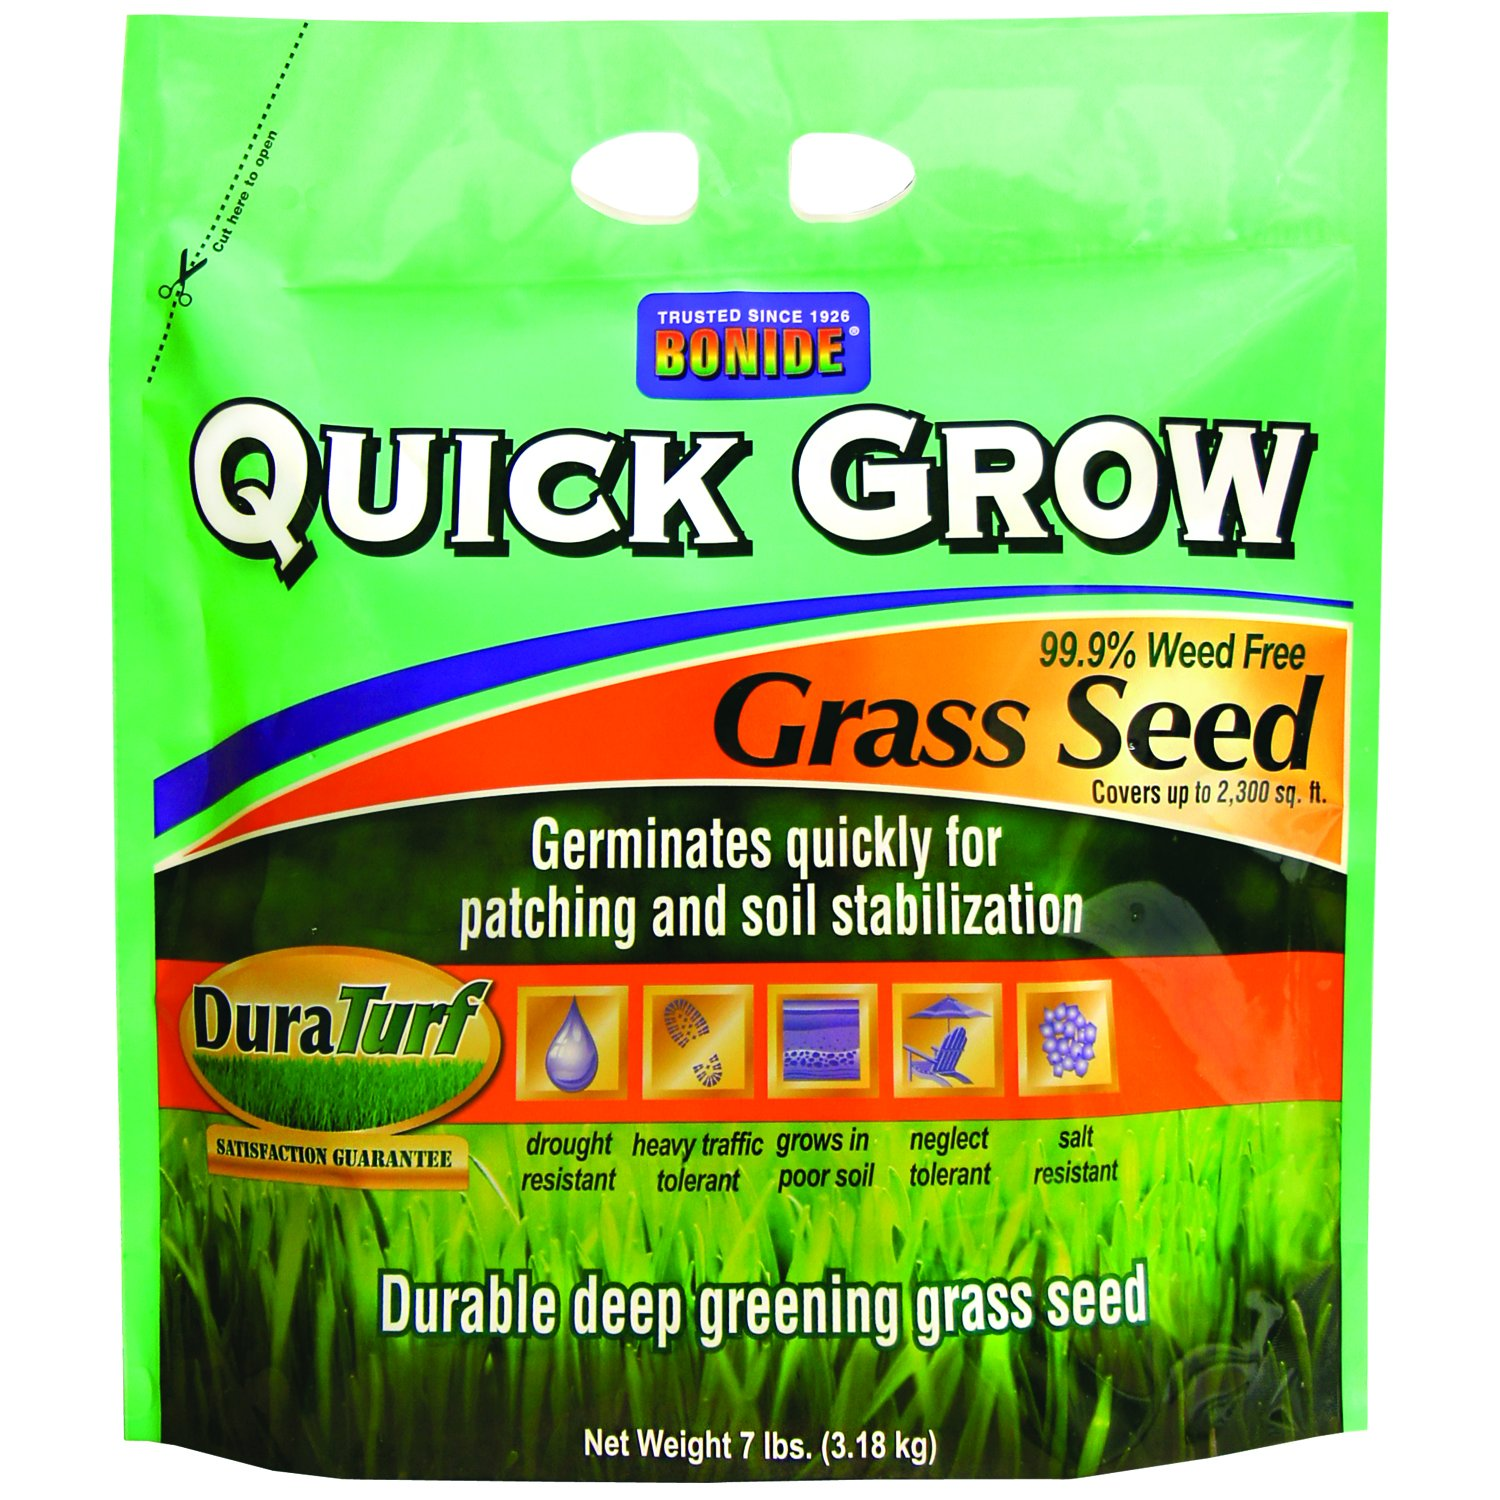 Bonide 60264 Quick Grow Grass Seed, 7-Pound by Bonide